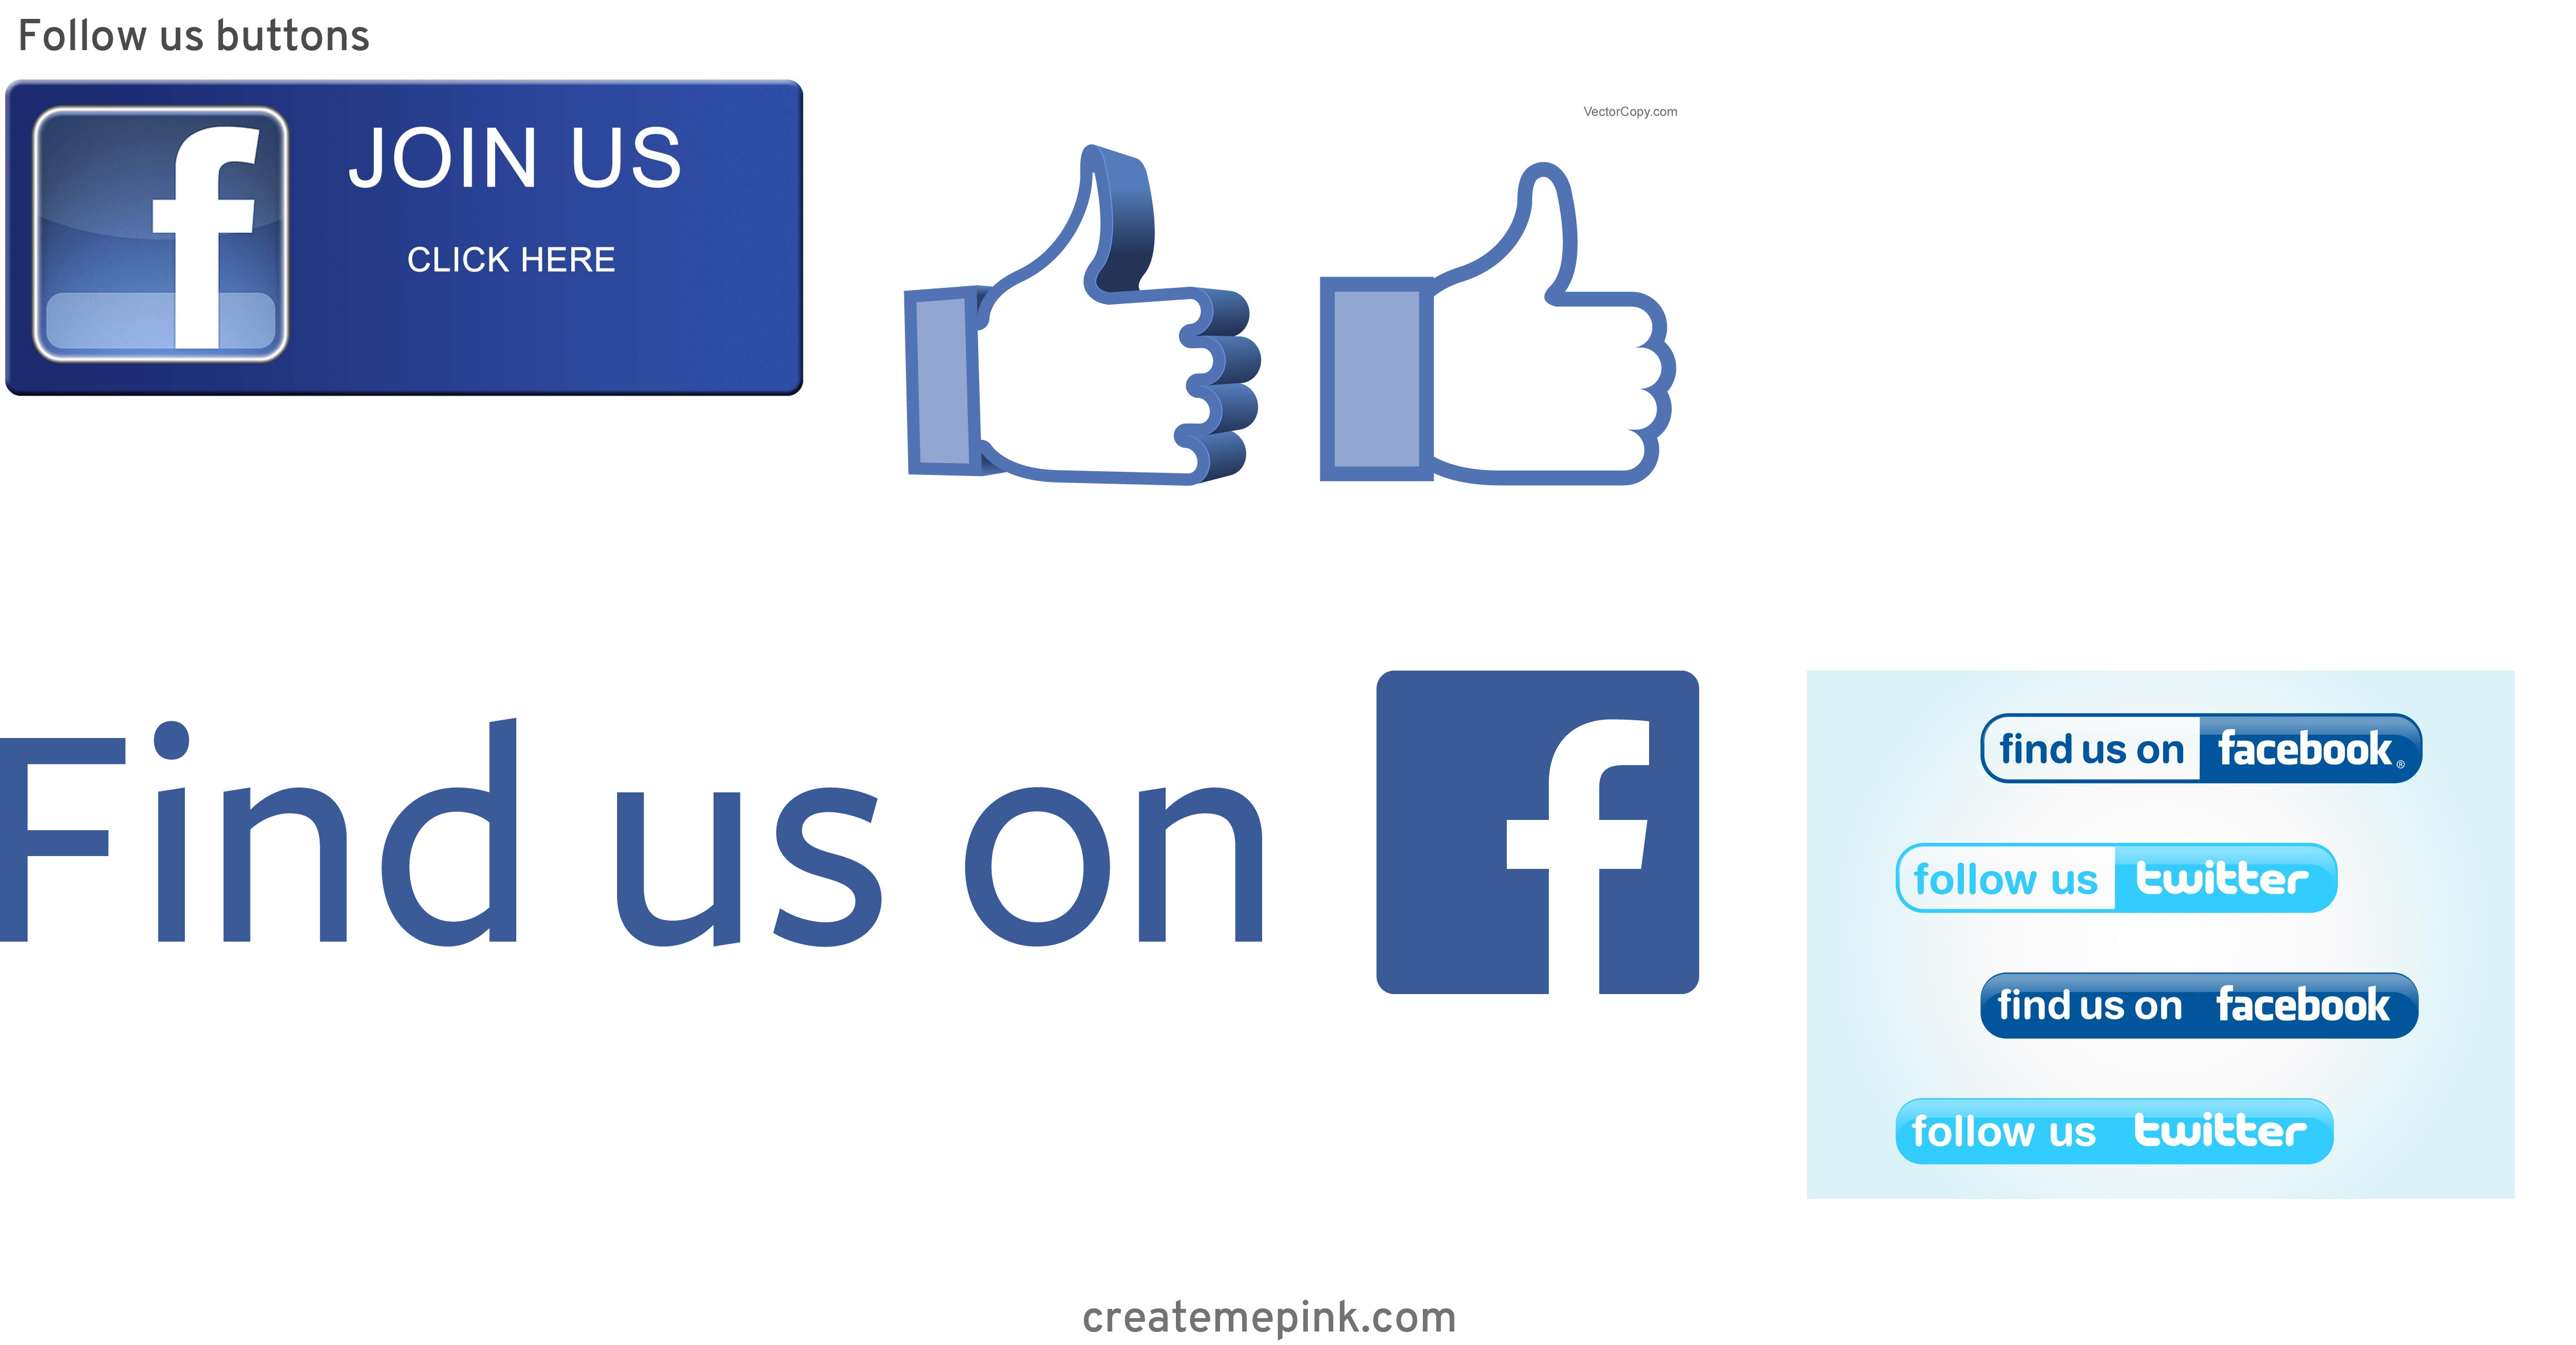 Official Like Us On Facebook Logo Vector: Follow Us Buttons